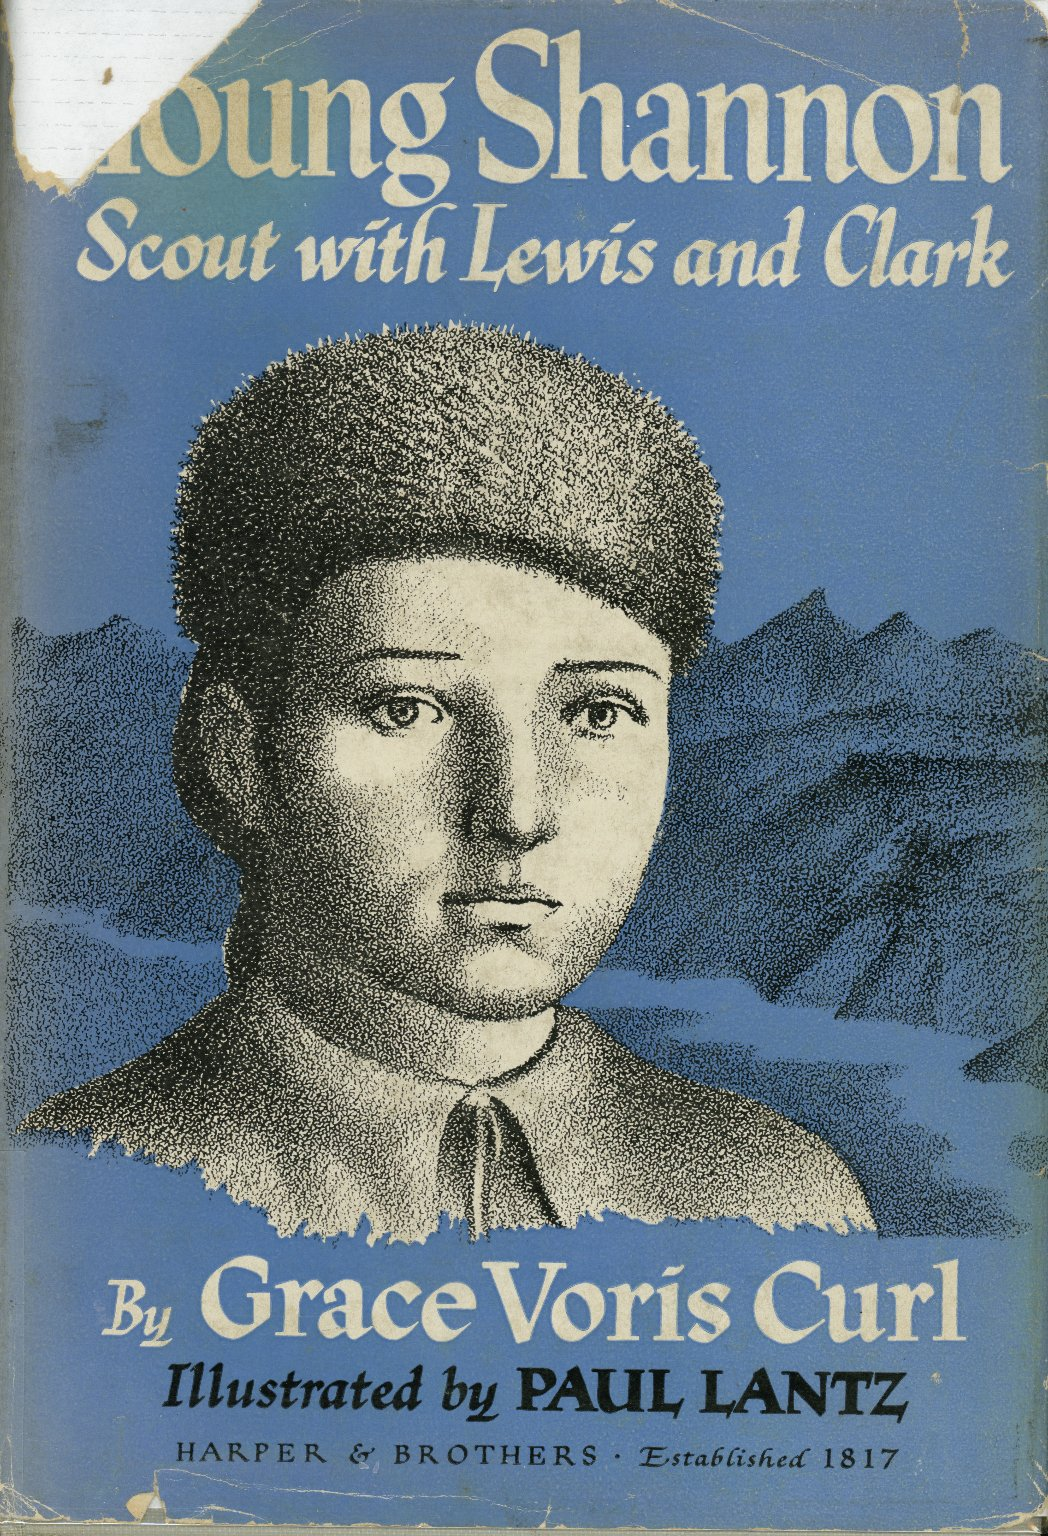 Young Shannon, Scout with Lewis and Clark, cover